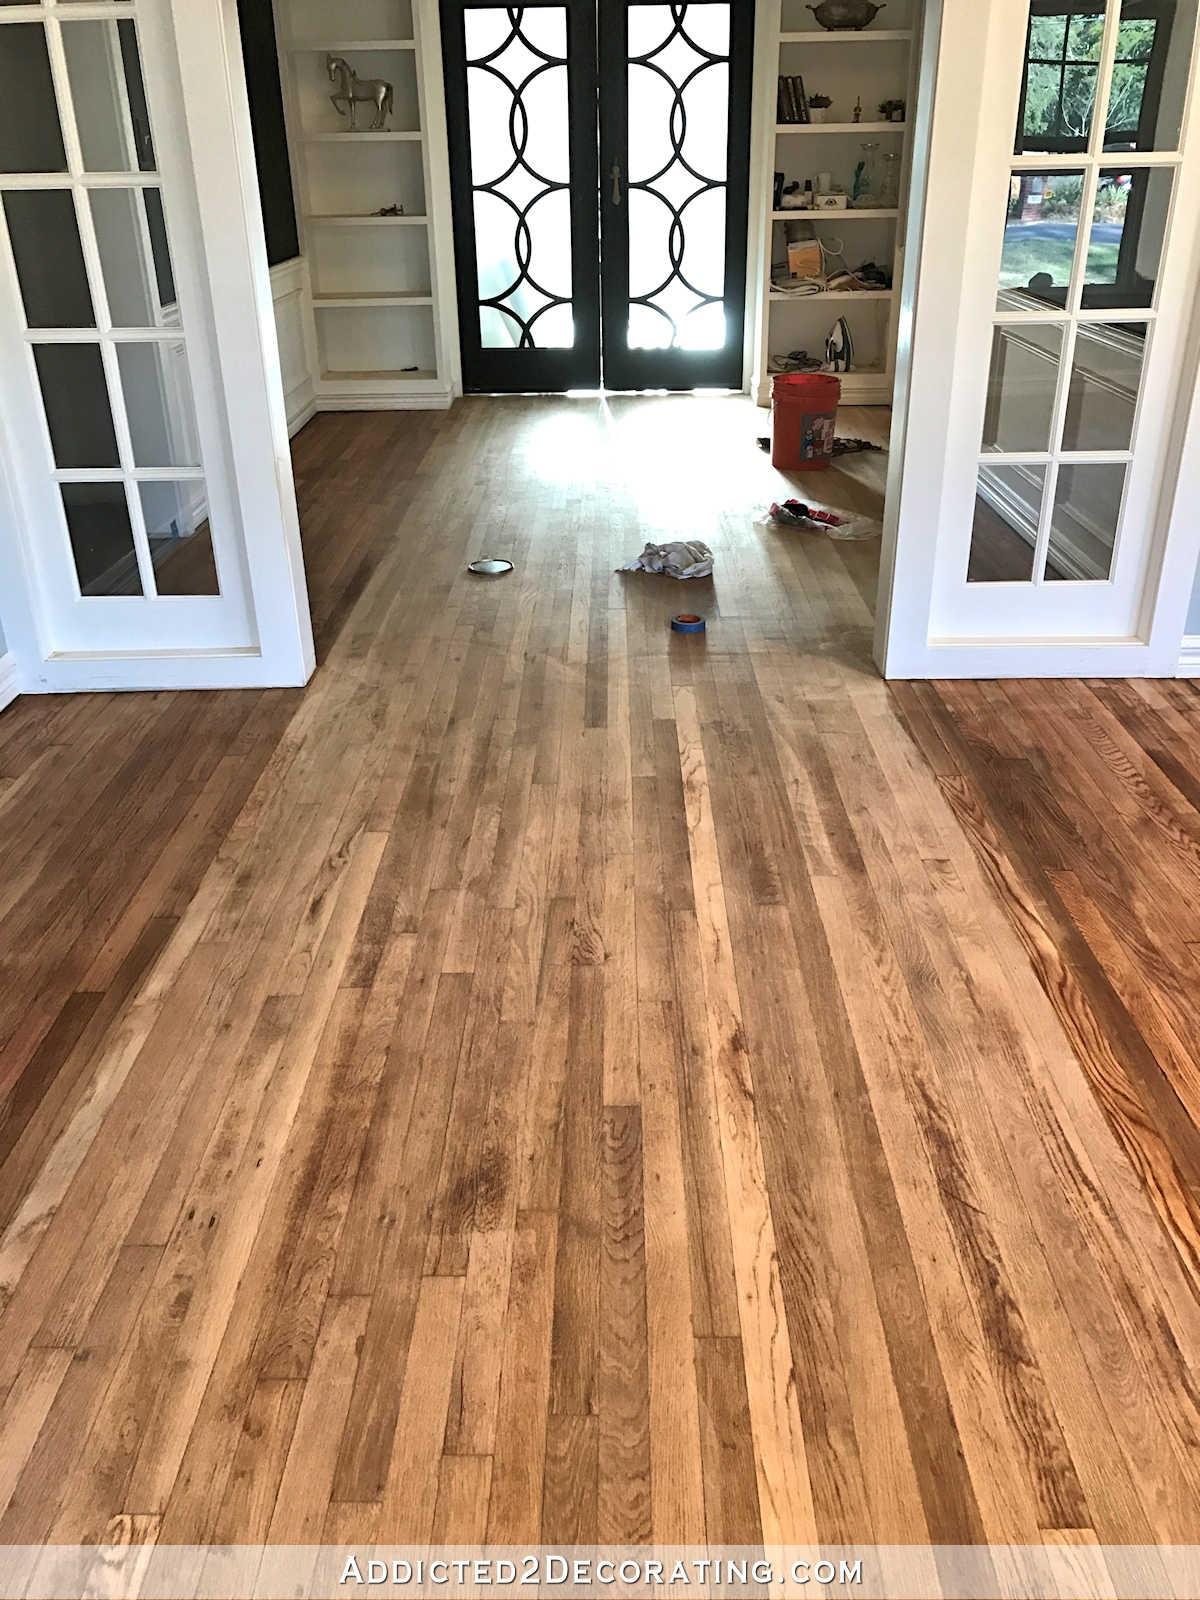 Estimated Cost Of Installing Hardwood Floors Of 19 Unique How Much Does It Cost to Refinish Hardwood Floors Gallery Intended for How Much Does It Cost to Refinish Hardwood Floors Unique Adventures In Staining My Red Oak